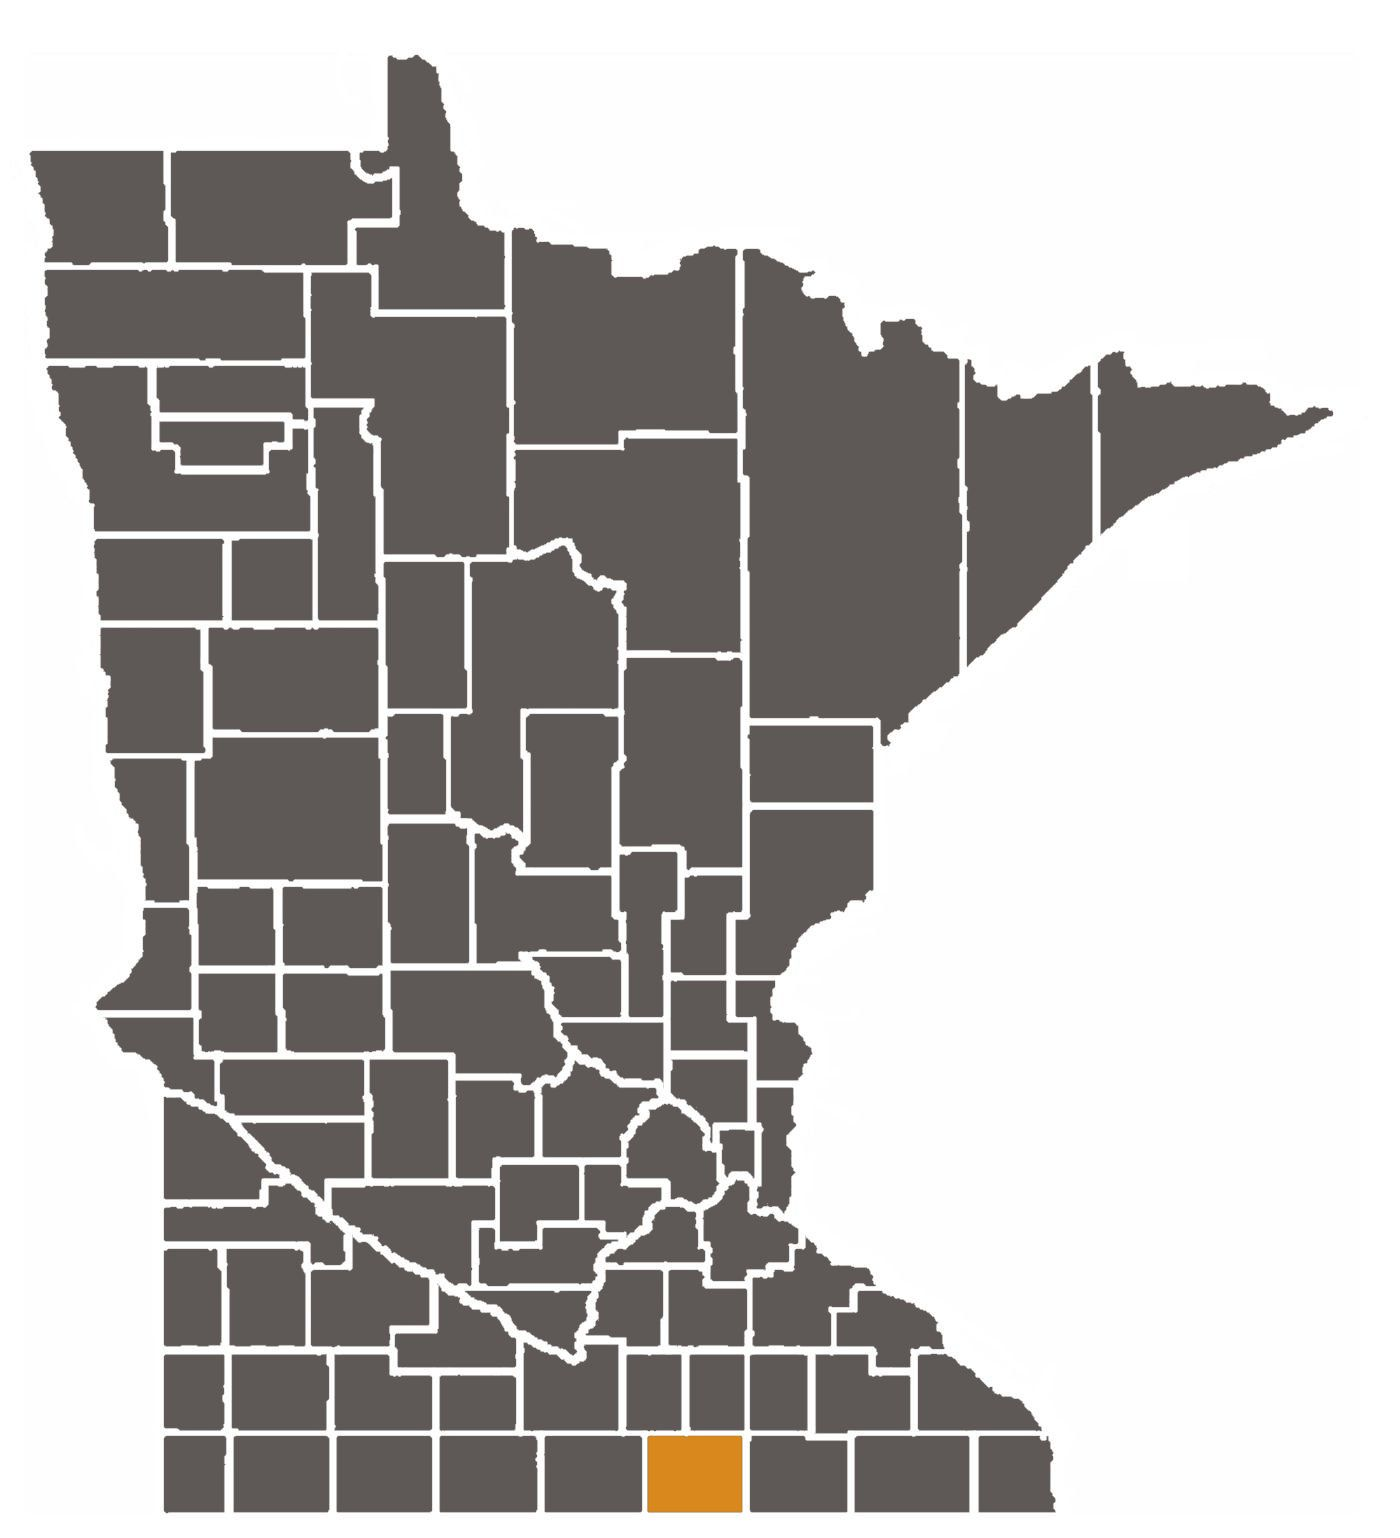 Minnesota map with Freeborn County highlighted.